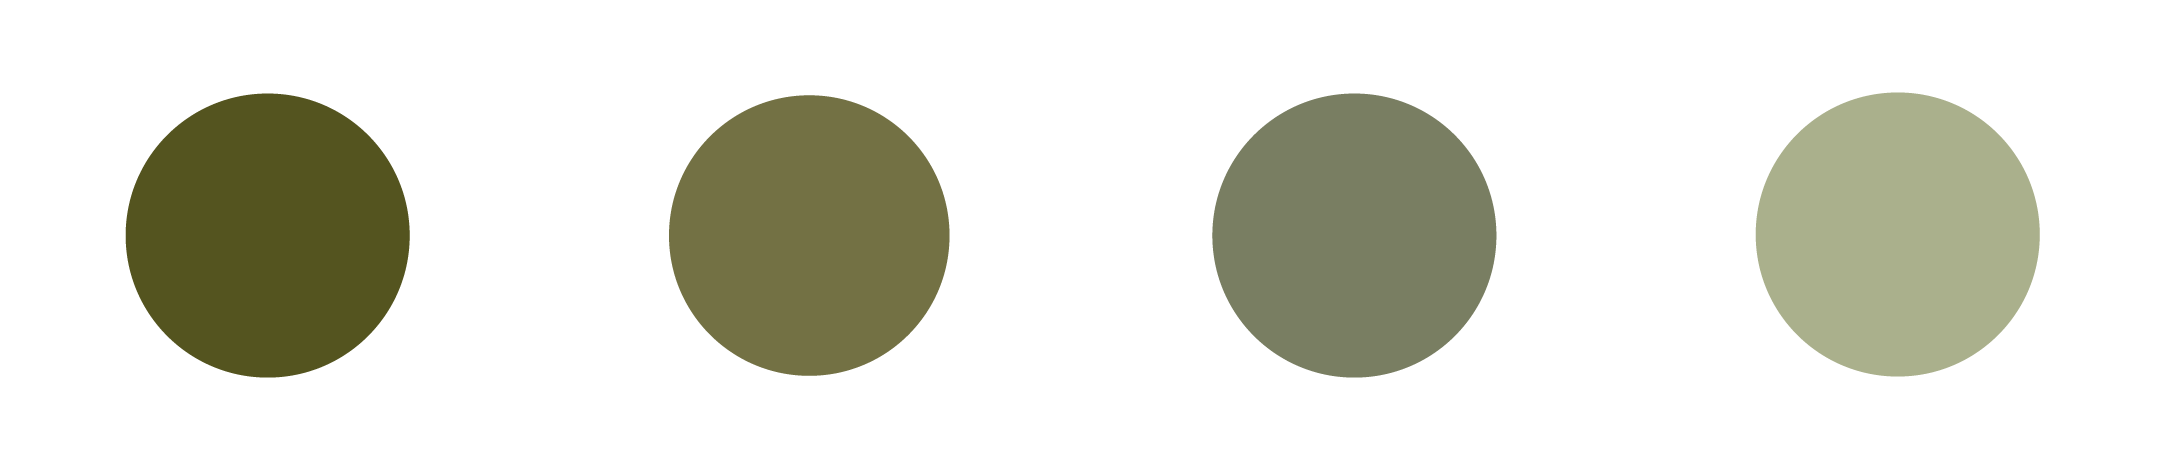 Green-02.png